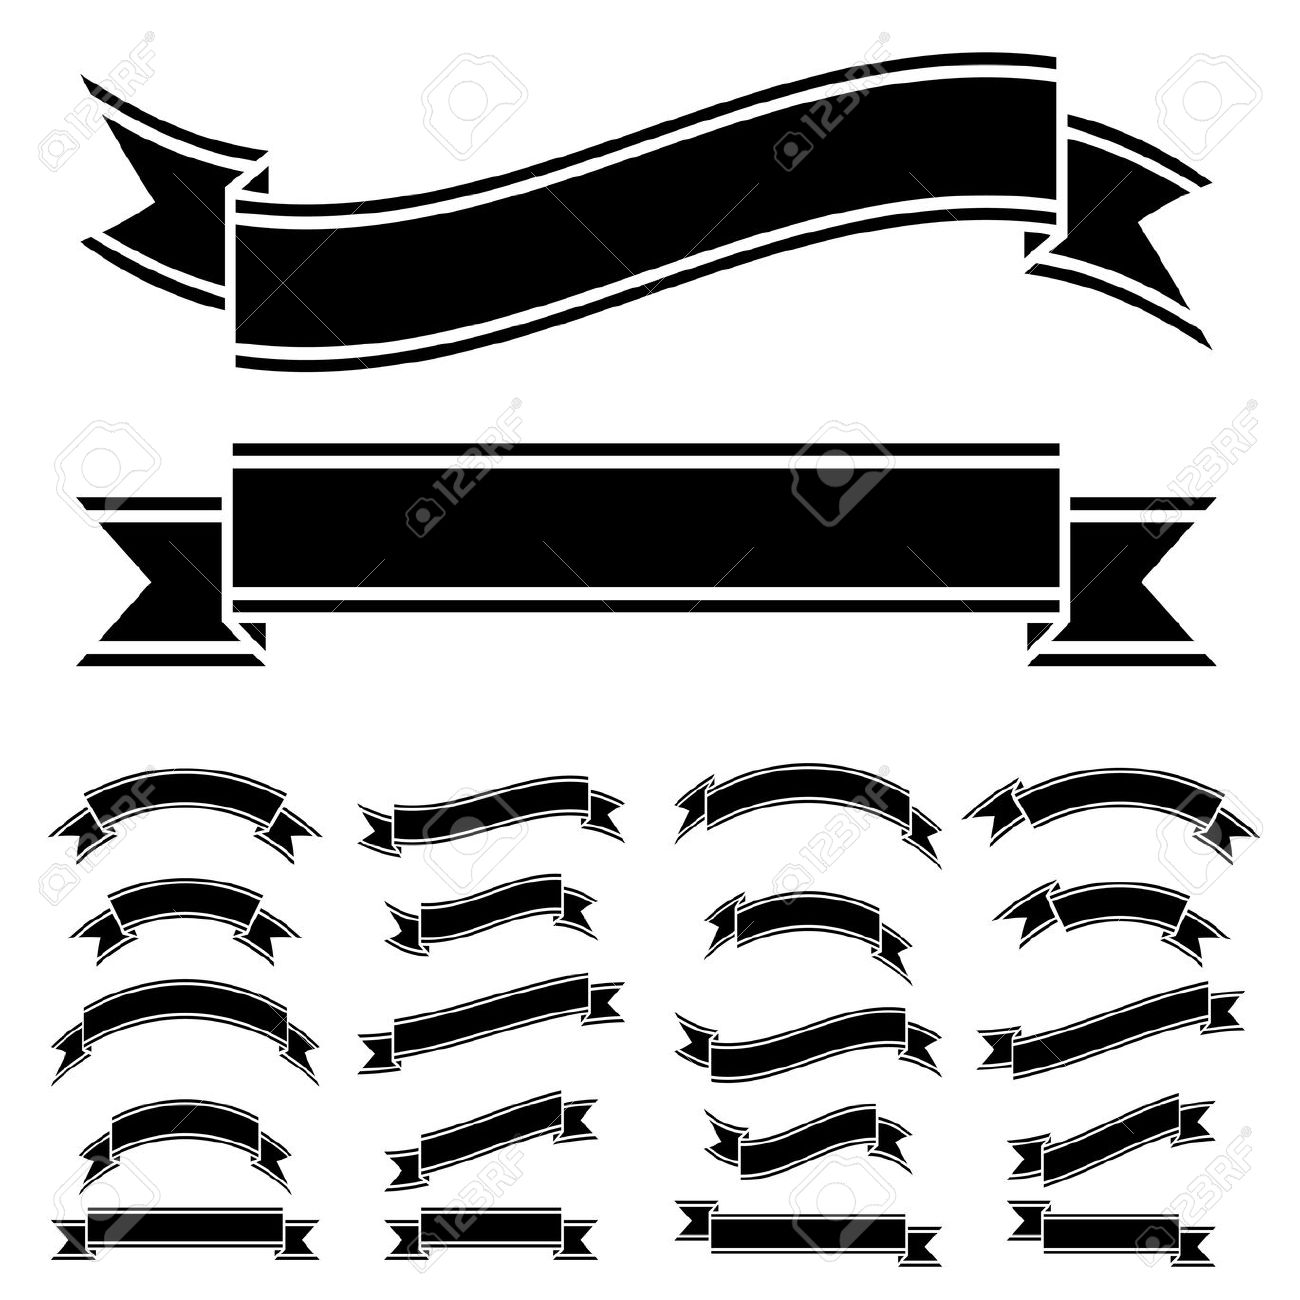 Ribbon Clipart Black And White | Free download on ClipArtMag